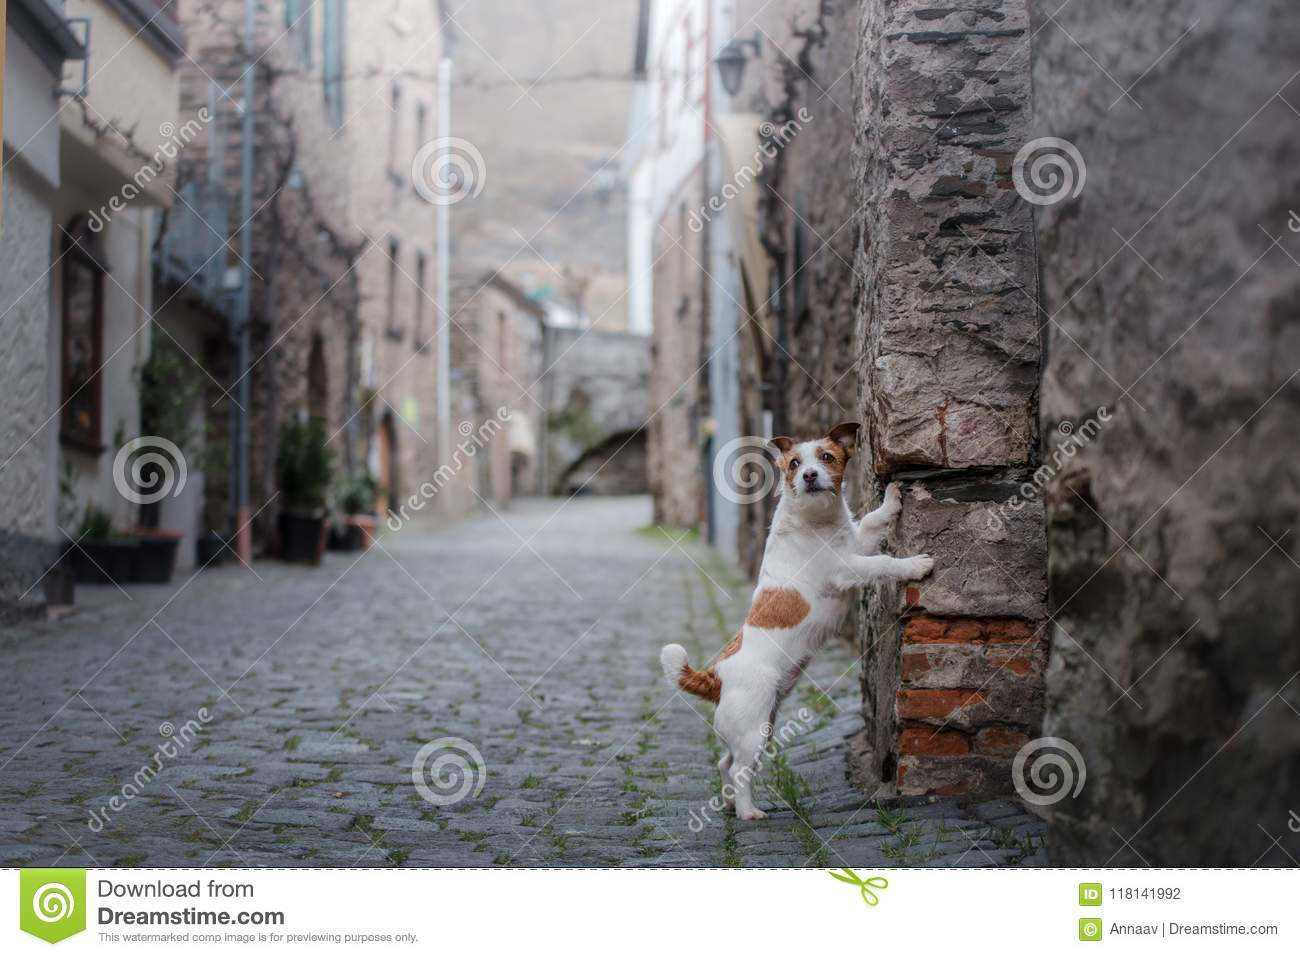 Small dog in the old town. A pet in the city.